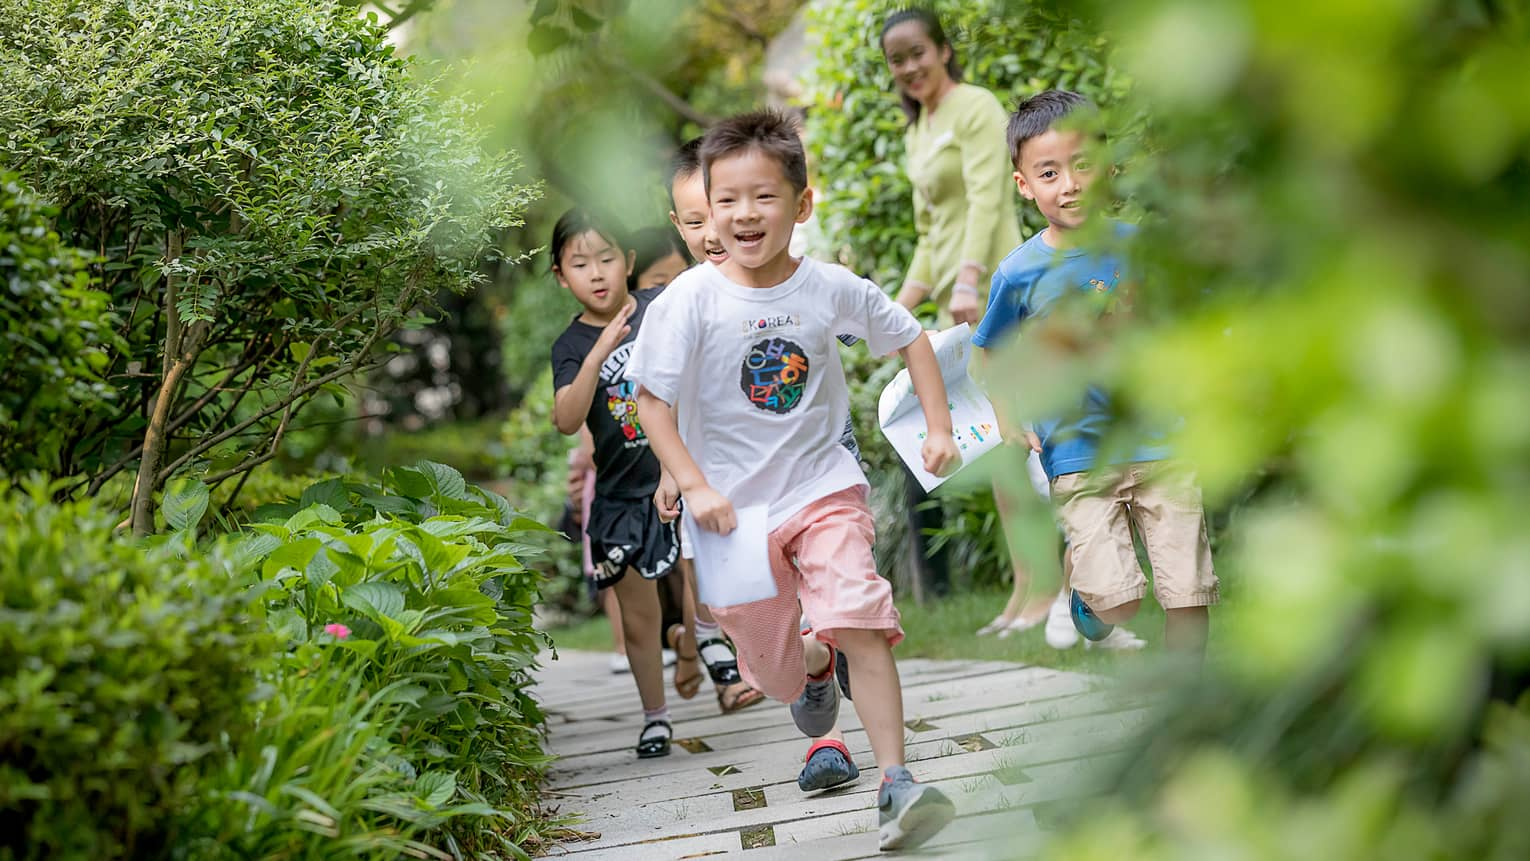 Smiling children run down wood path, bridge